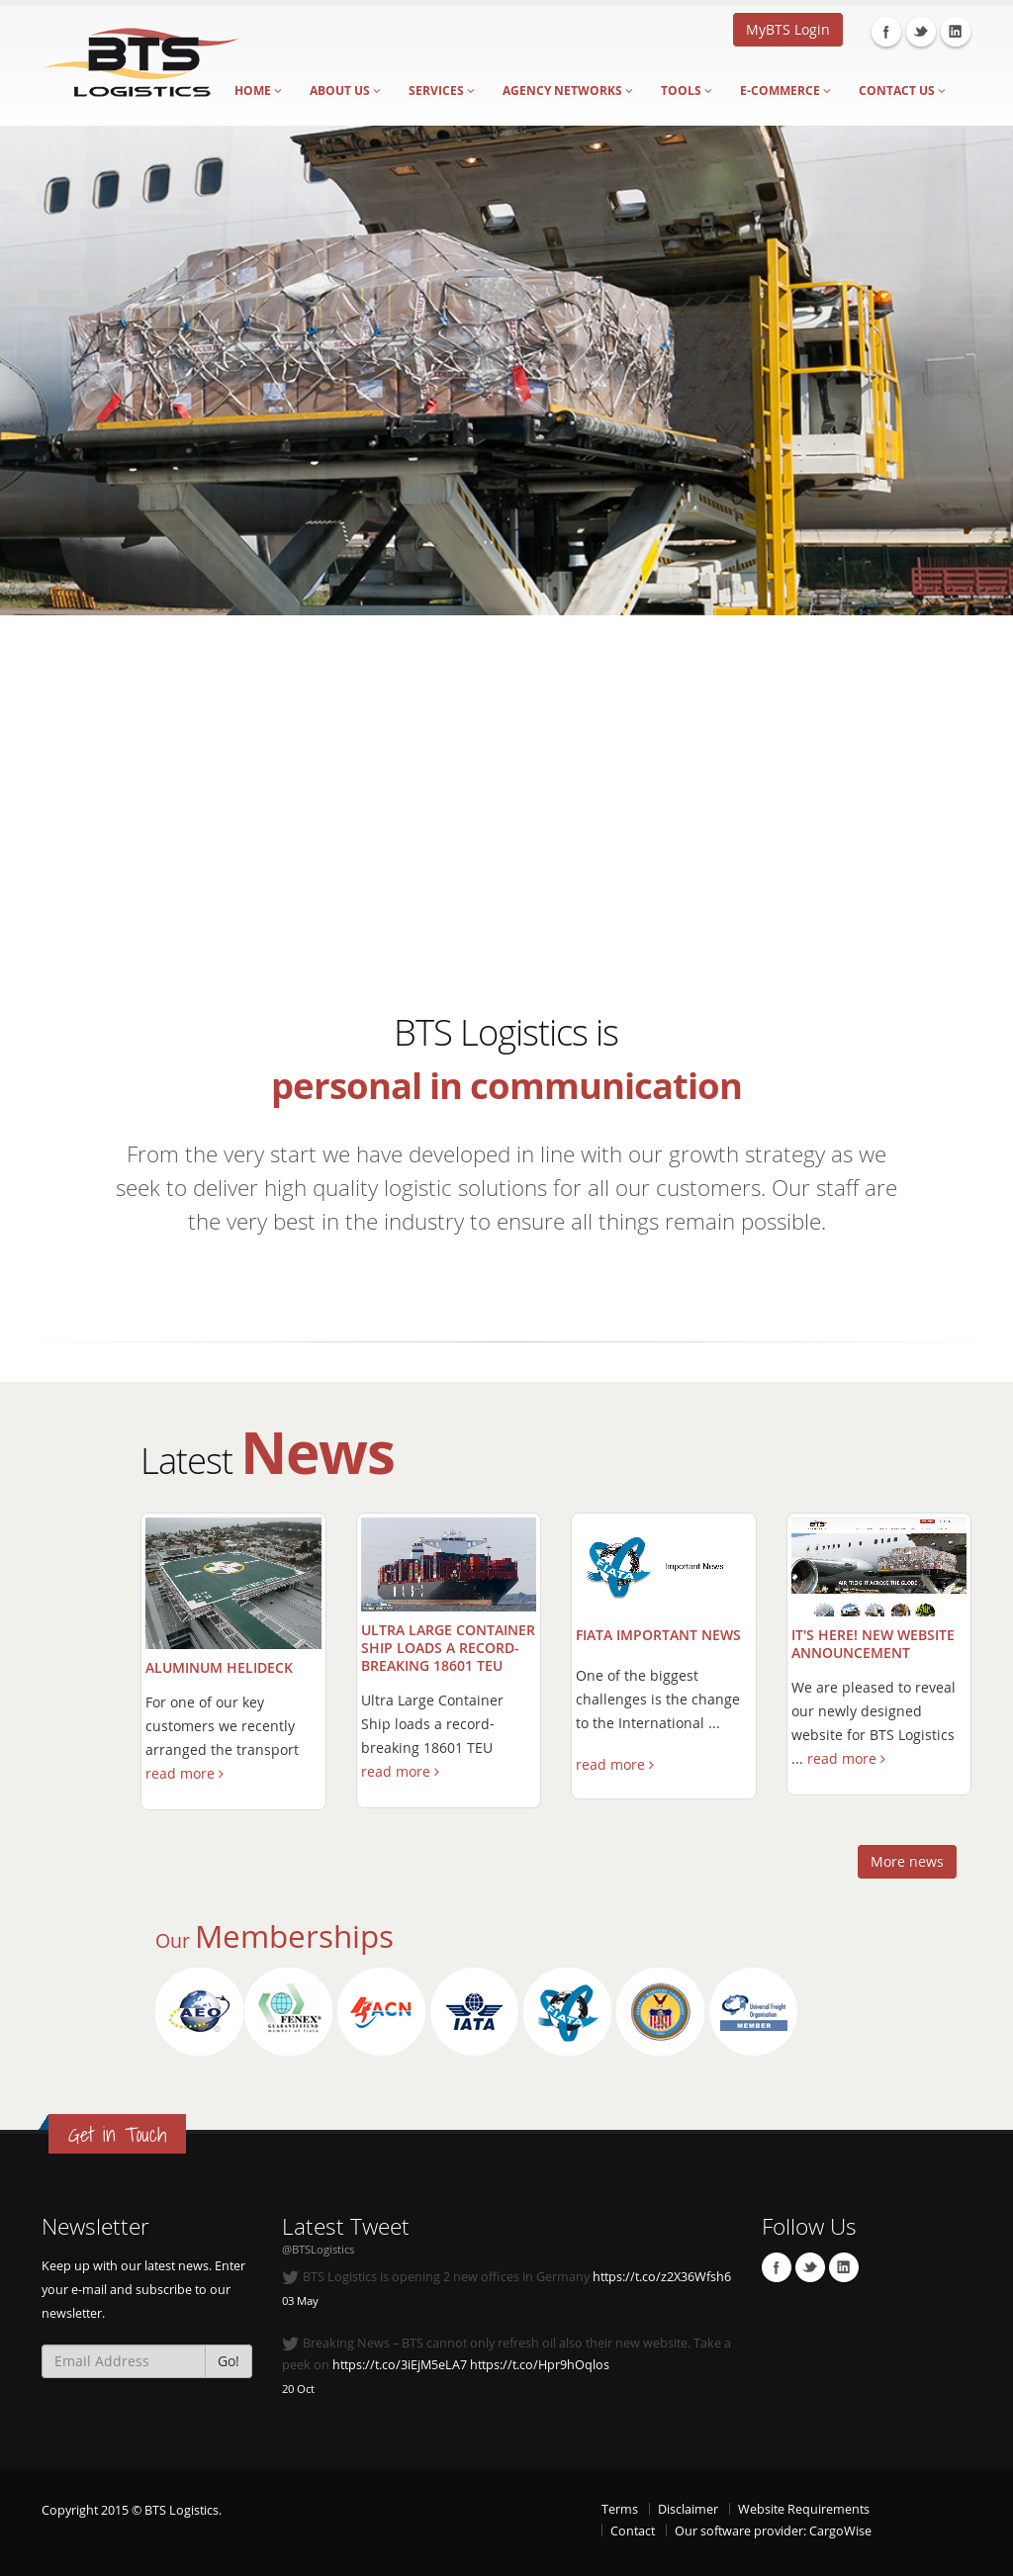 BTS Logistics Competitors, Revenue and Employees - Owler Company Profile